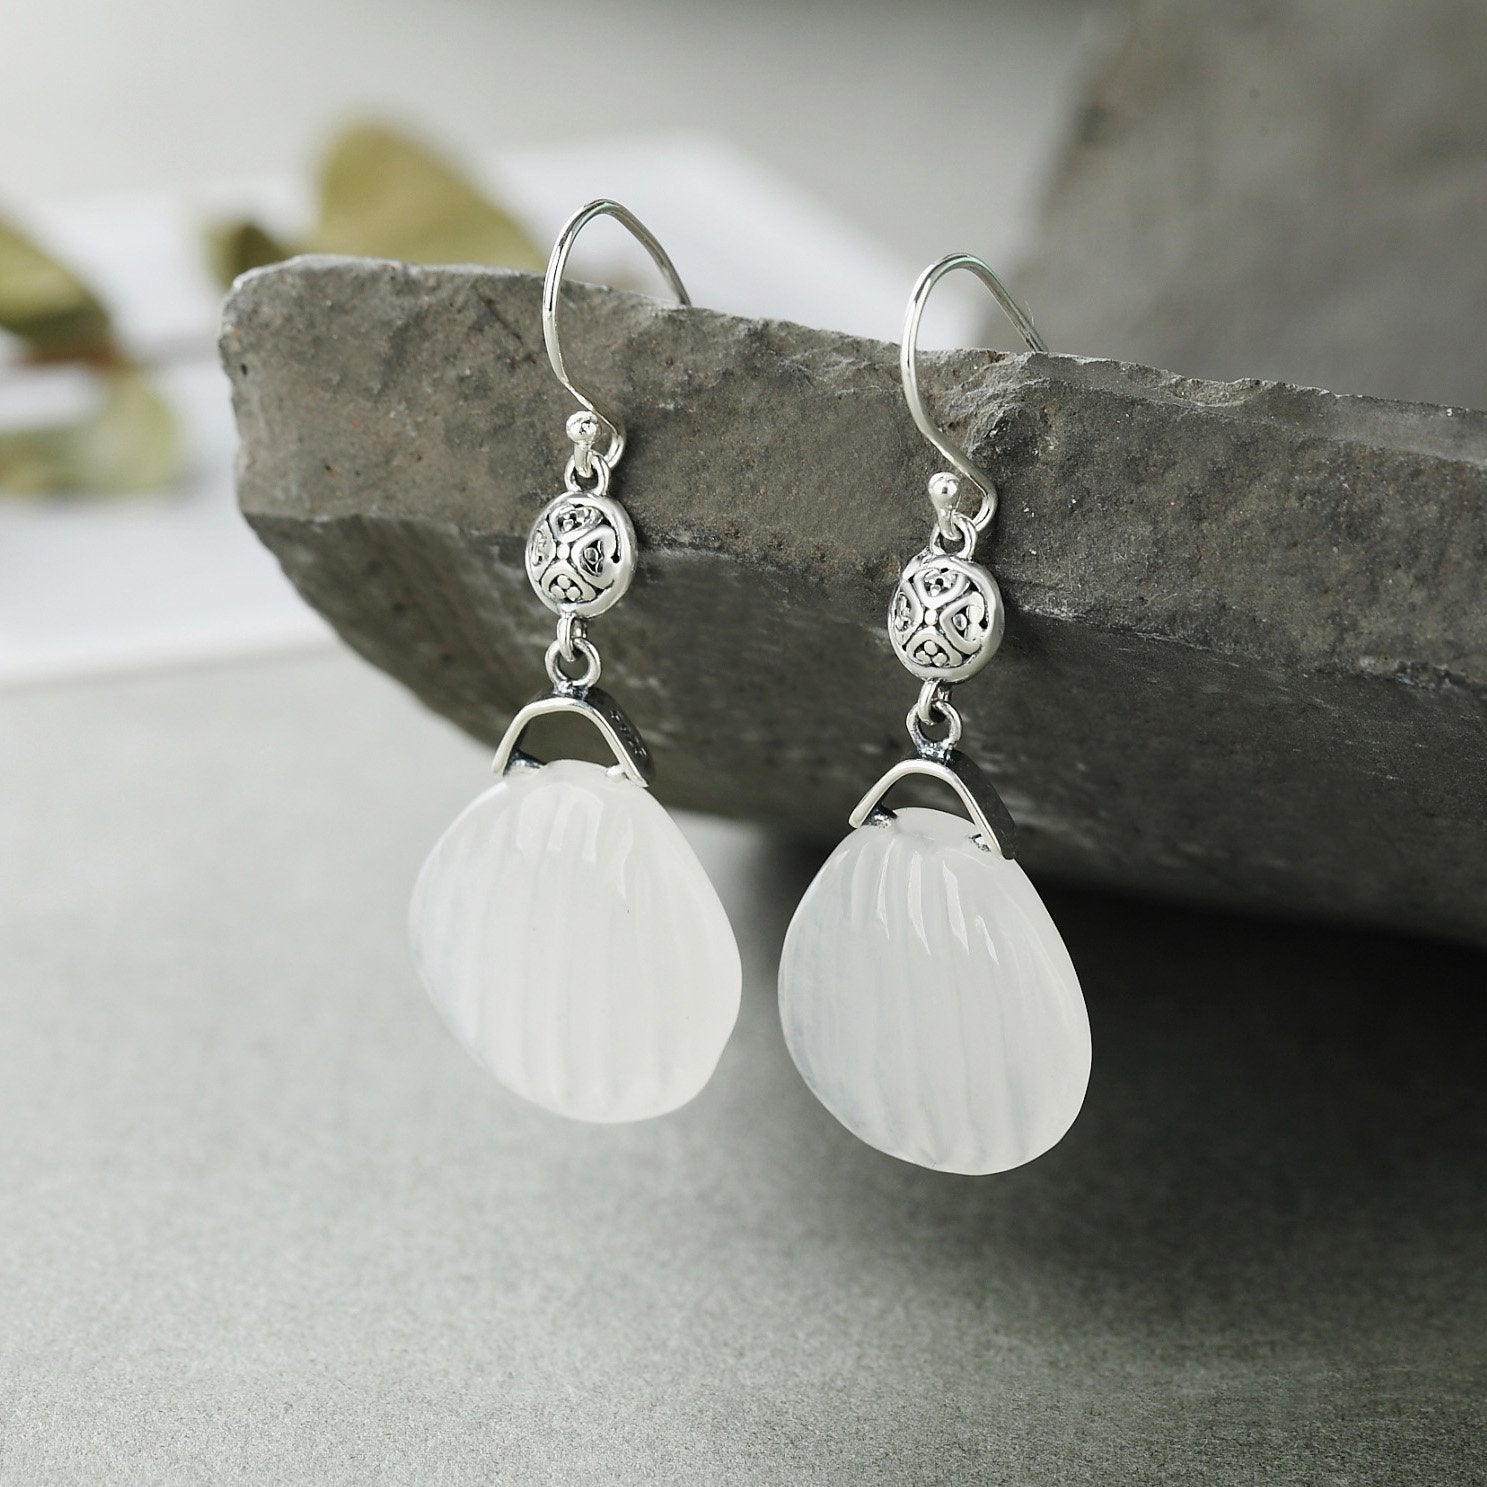 Vintage Quartzite Engraved Drop Earrings